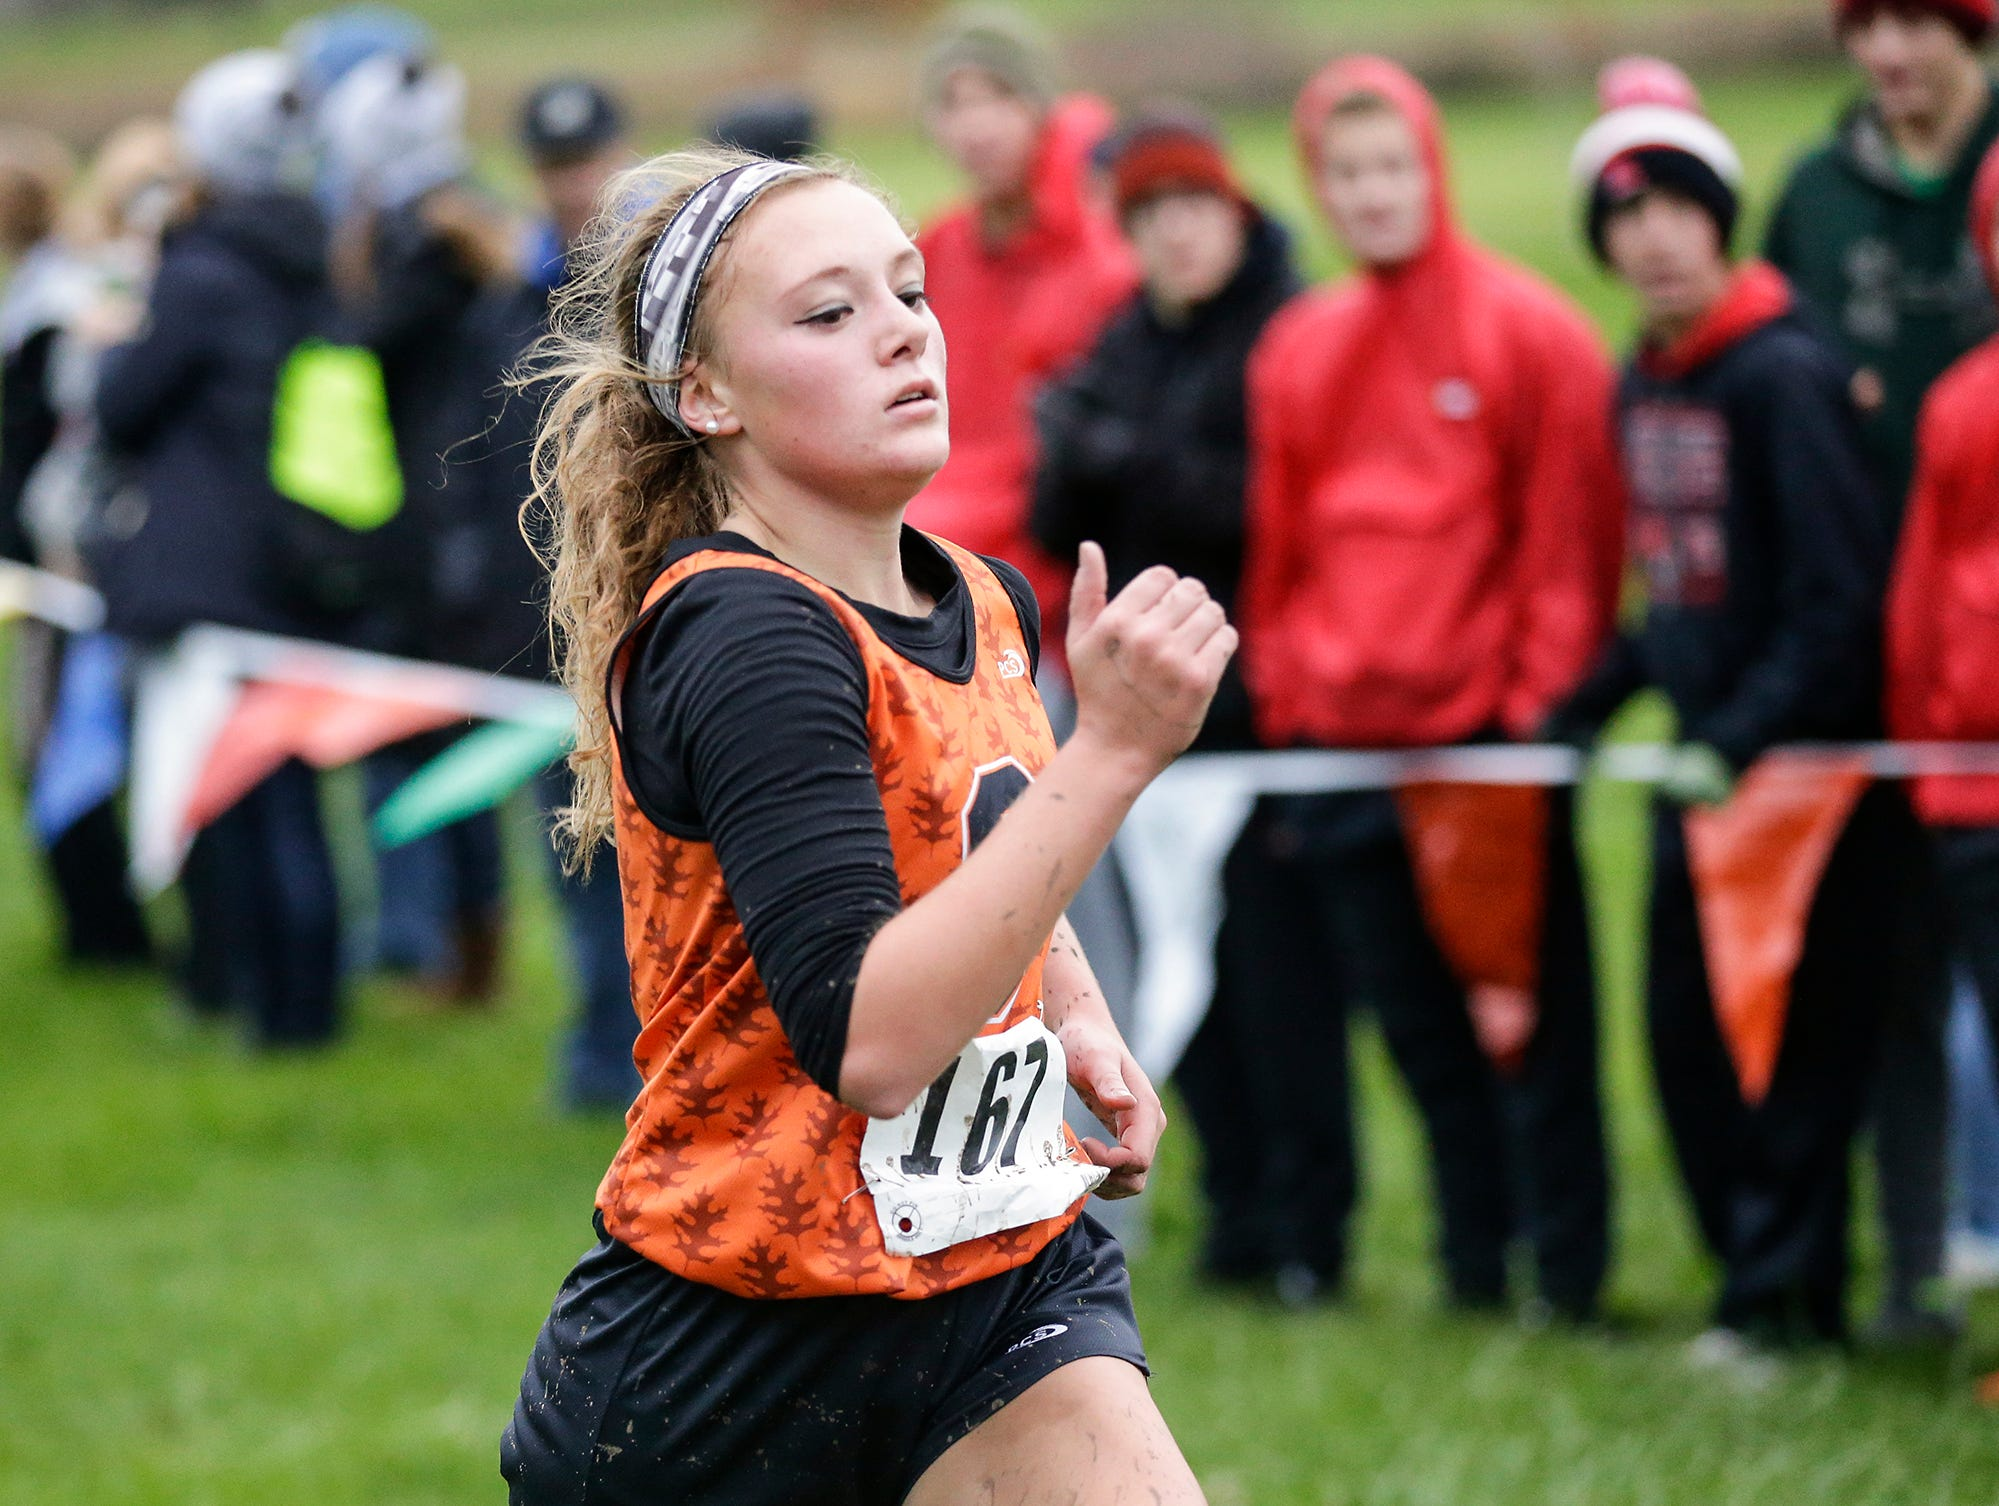 North Fond du Lac High School's Avery Conger runs in the WIAA Division two Mayville sectional cross country meet at the Mayville golf course Friday, October 19, 2018. Doug Raflik/USA TODAY NETWORK-Wisconsin